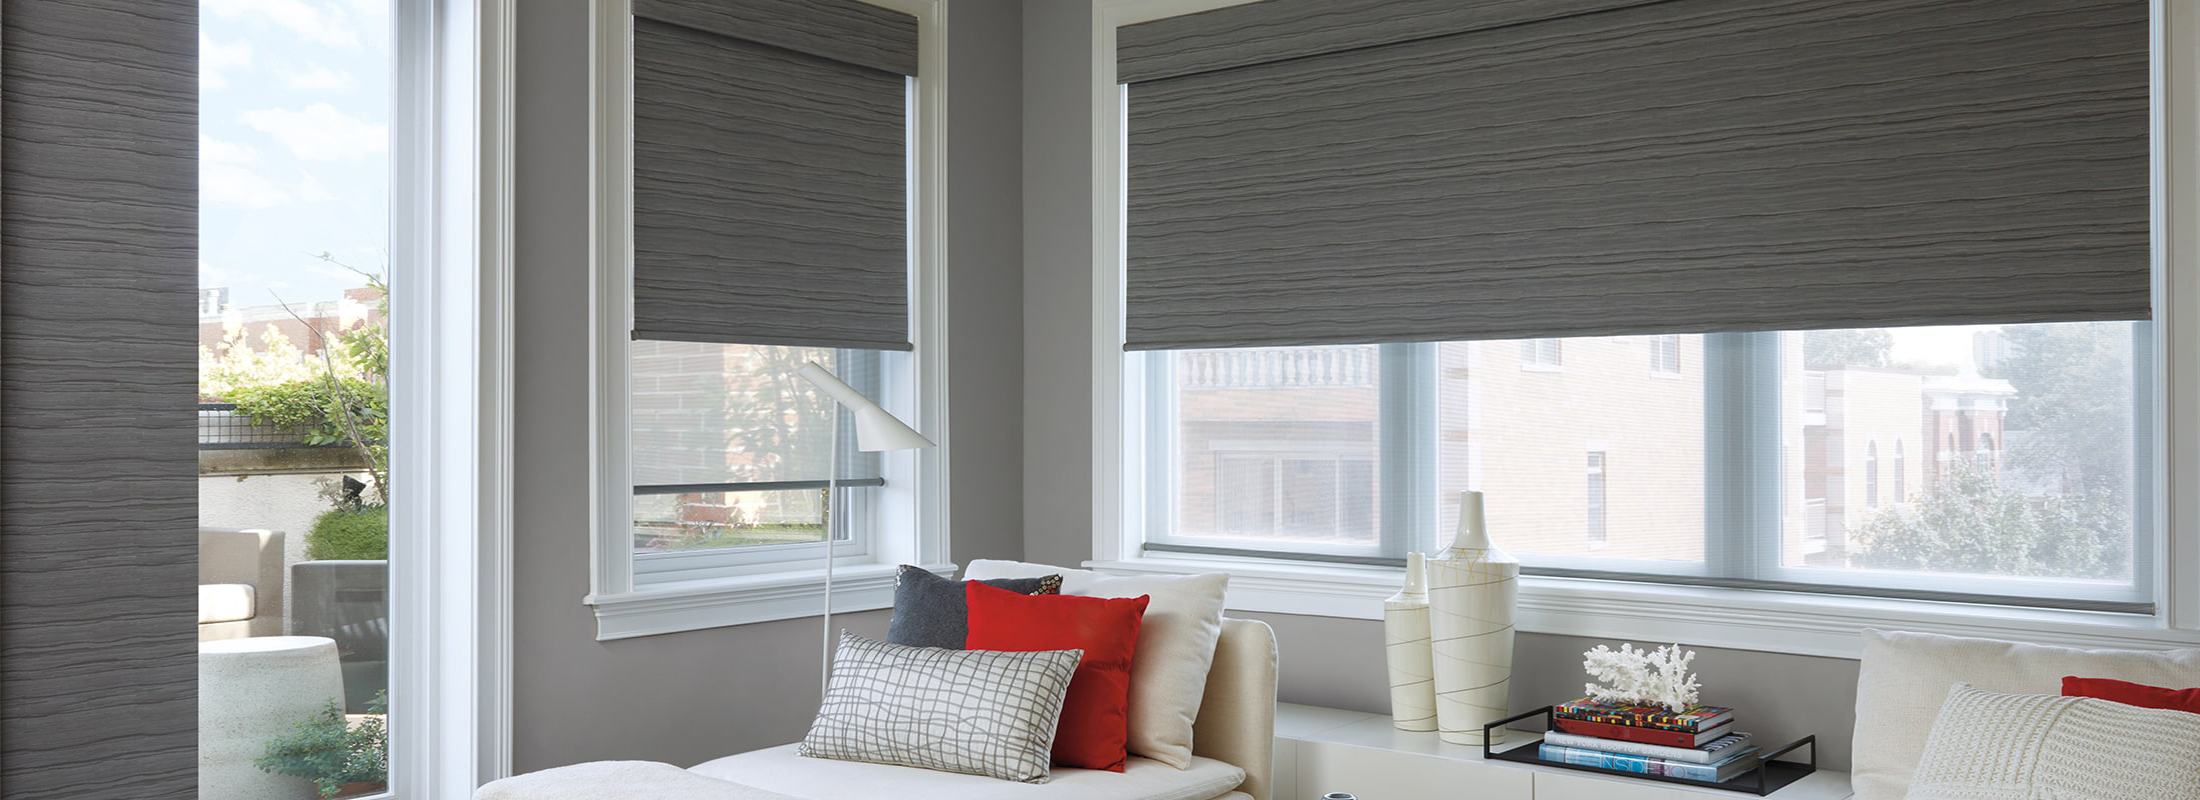 Get the Designer Roller Shades by Hunter Douglas at The Blinds Man